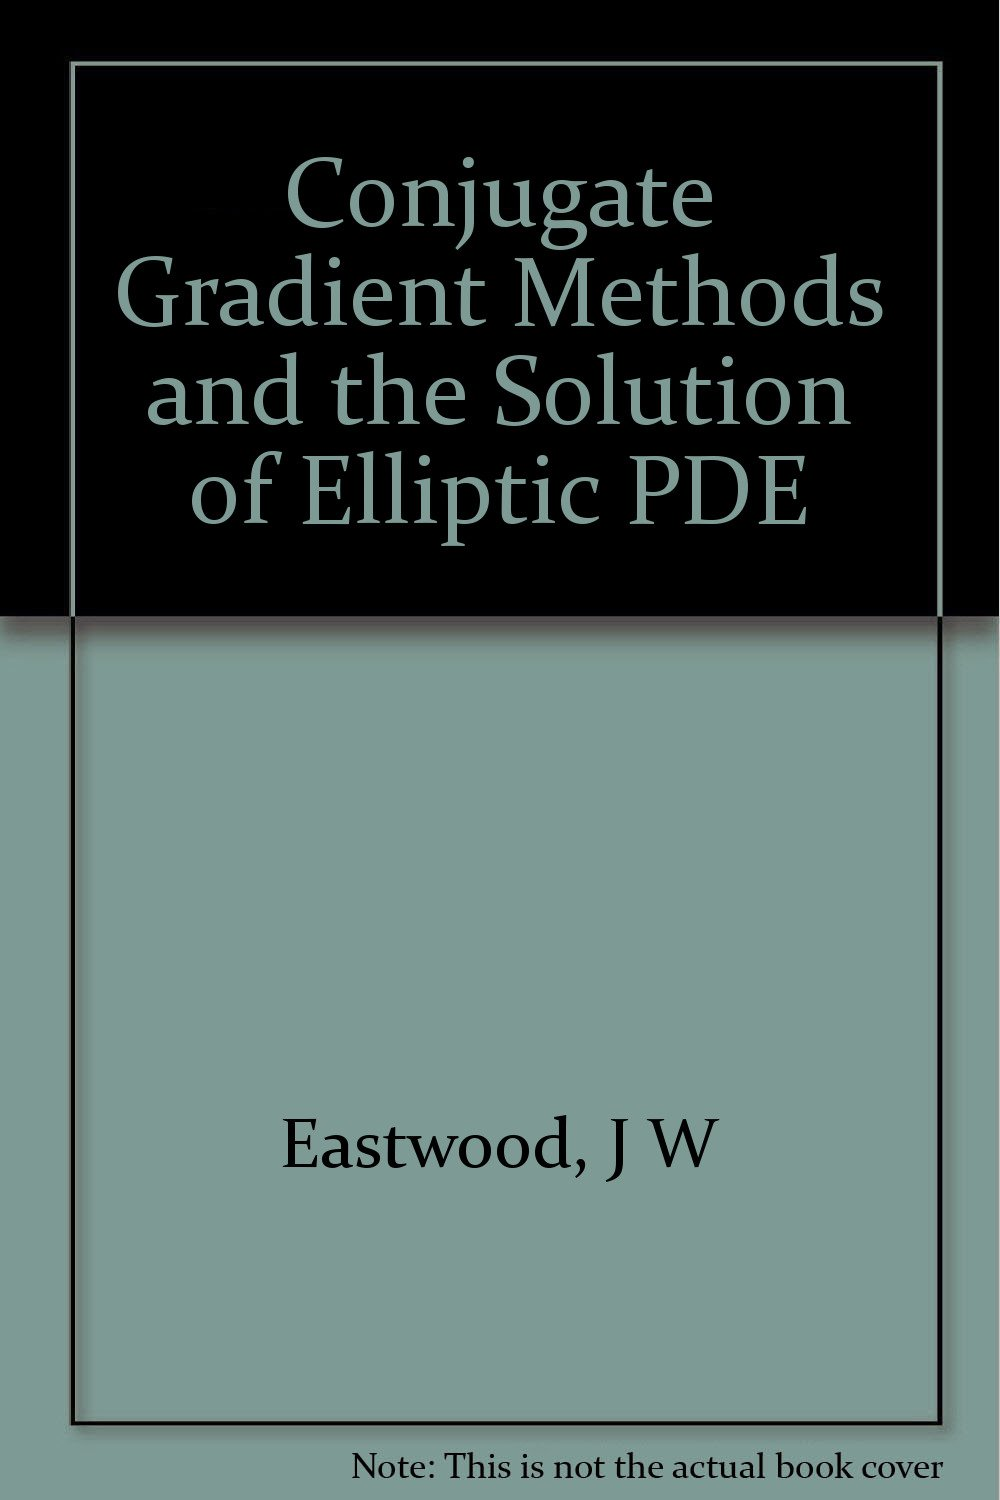 Conjugate Gradient Methods and the Solution of Elliptic PDE